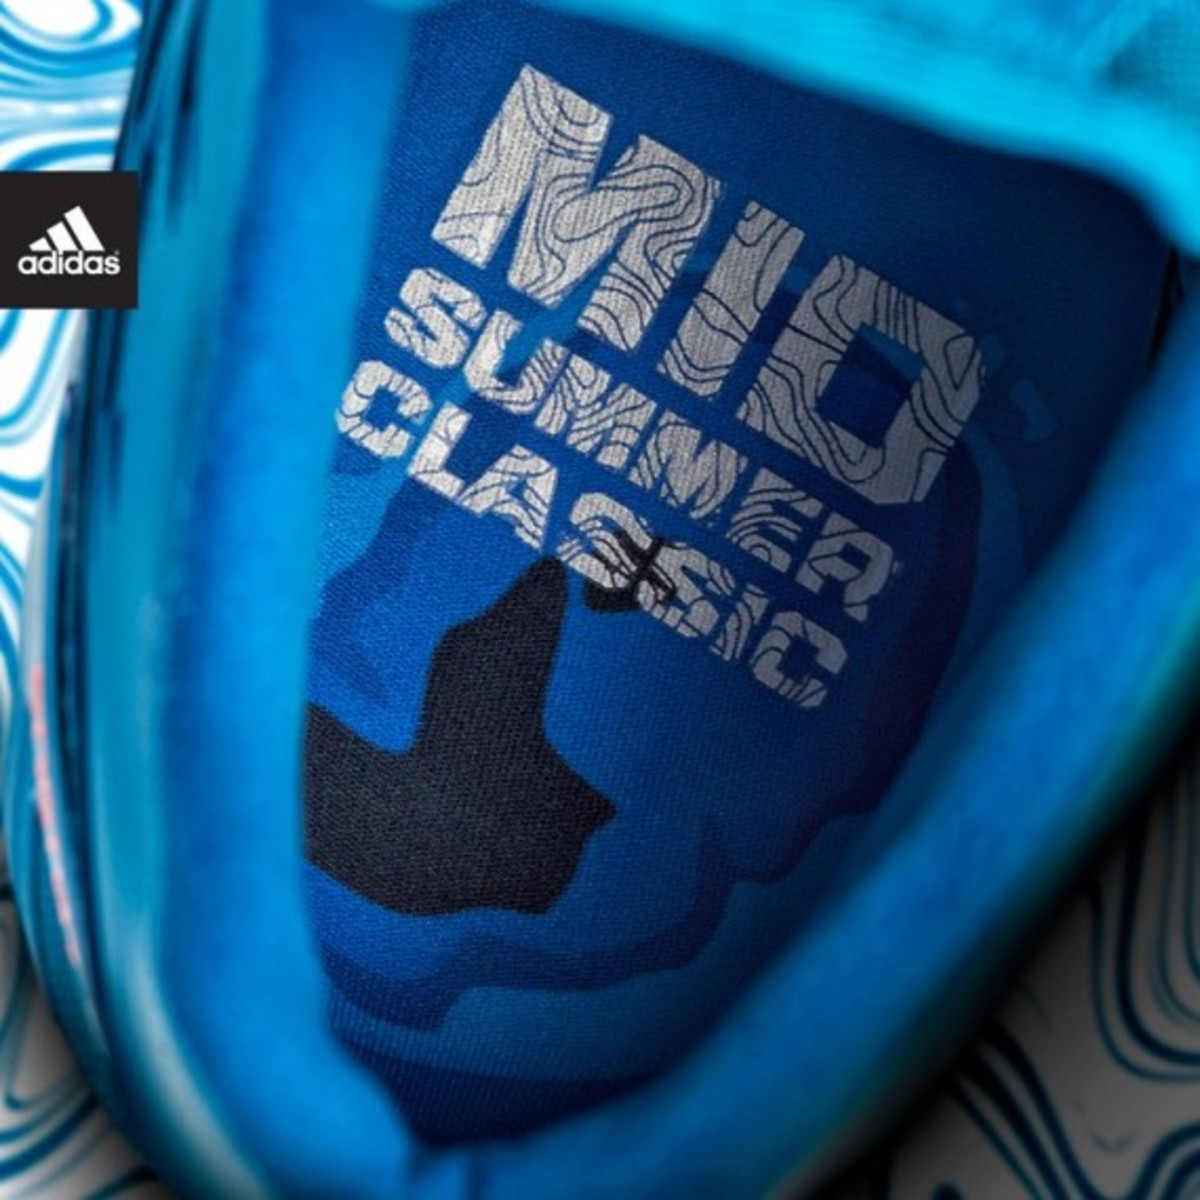 adidas-unveils-mlb-all-star-energy-boost-cleat-03